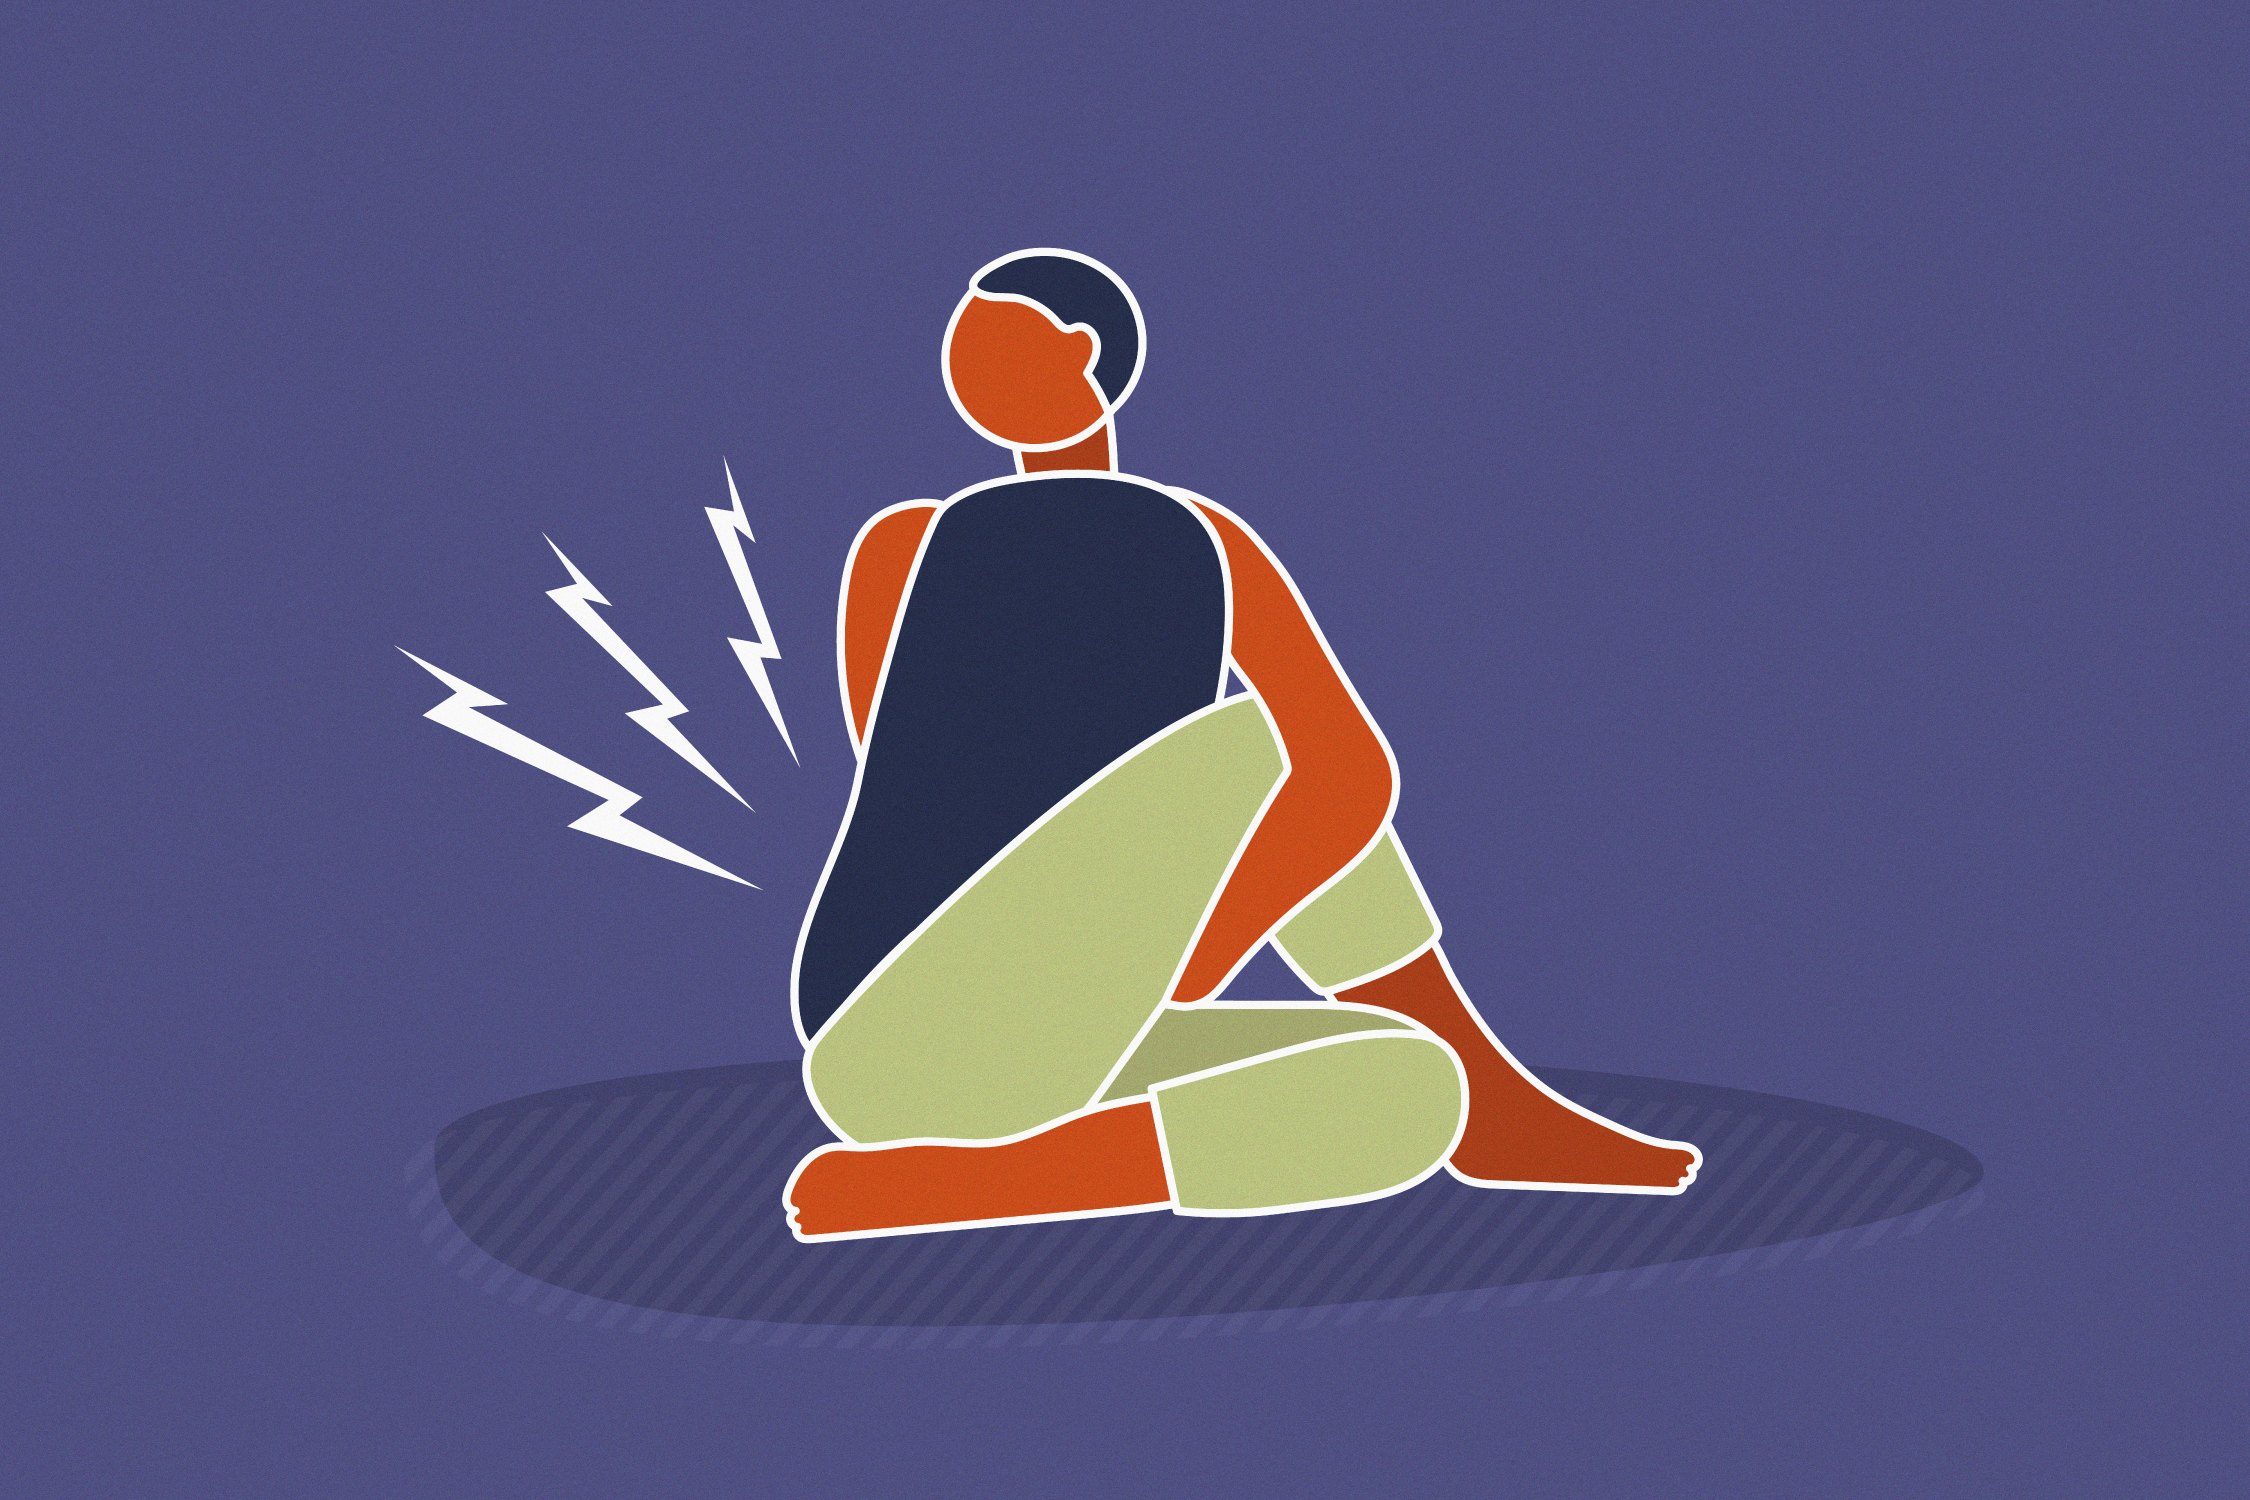 illustration of person cracking back